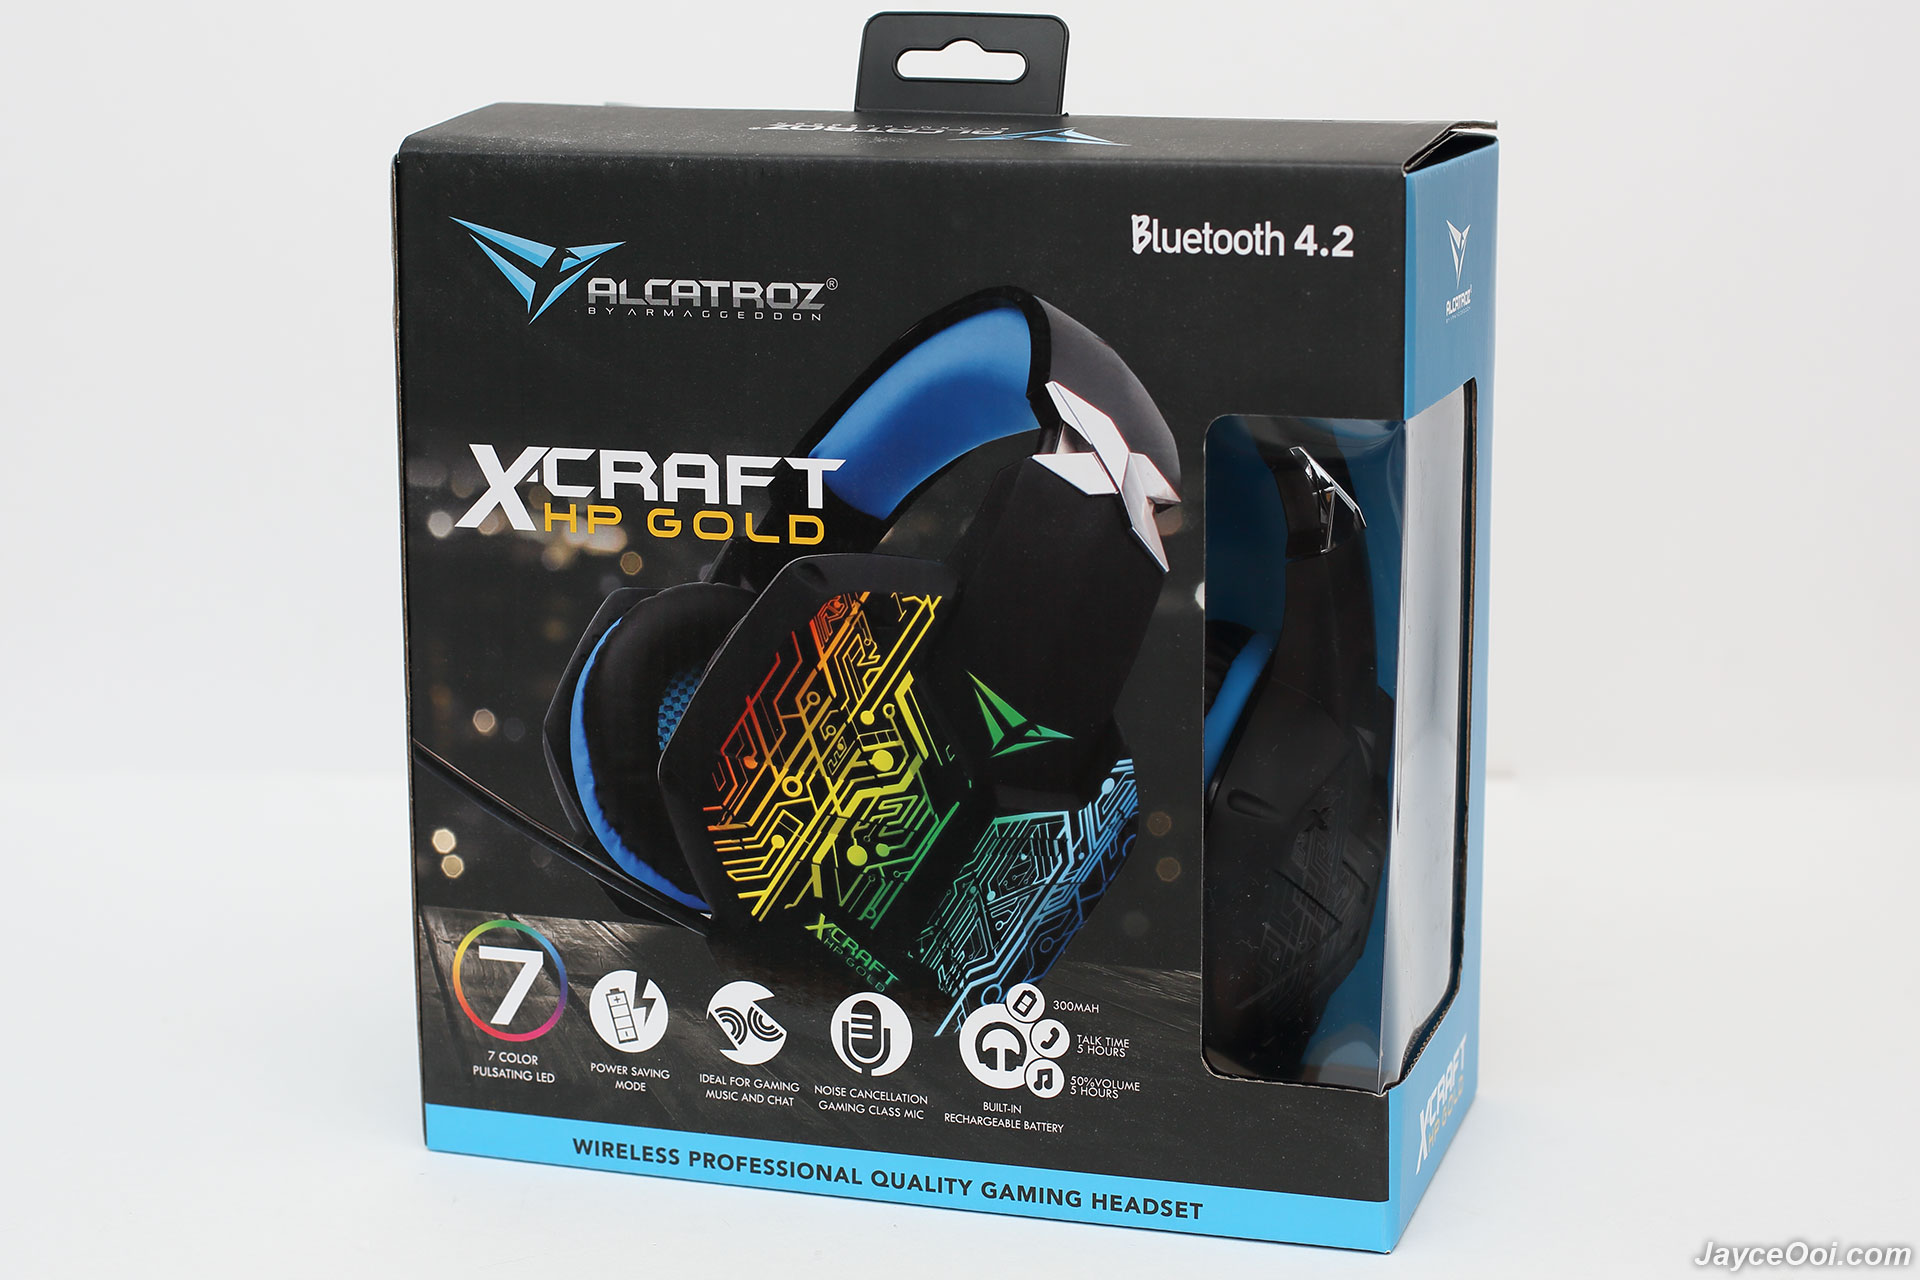 Image result for Alcatroz X-Craft HP Gold 8000 Bluetooth Mobile Gaming Headphones